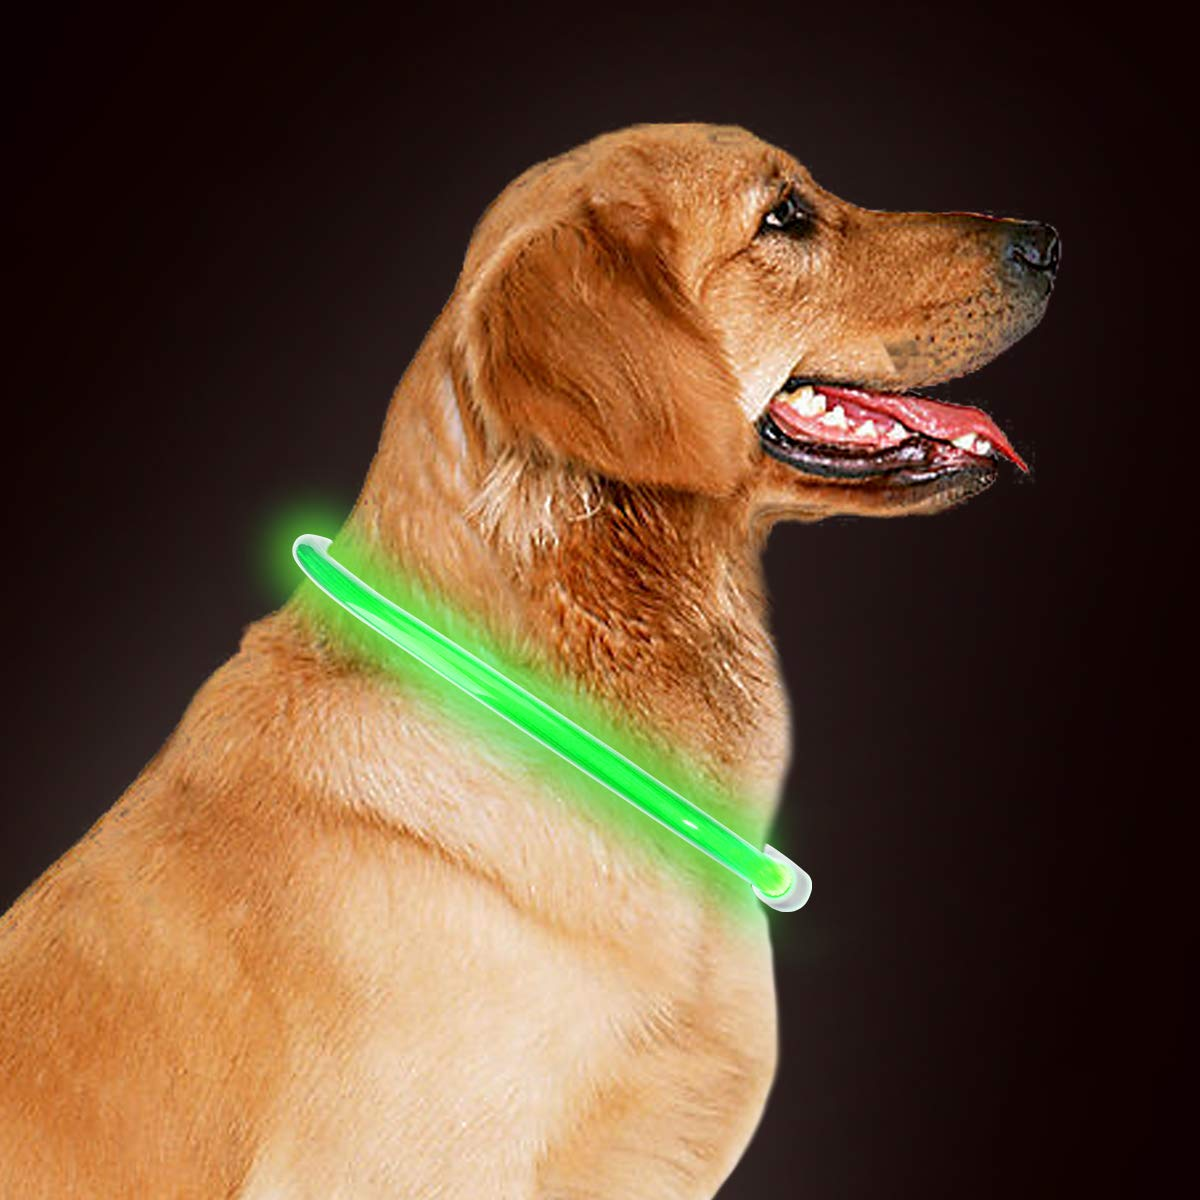 akyu Light Up Dog Collar, Waterproof LED Dog Collar Adjustable Size Rechargeable Safe Collar for small medium large dogs